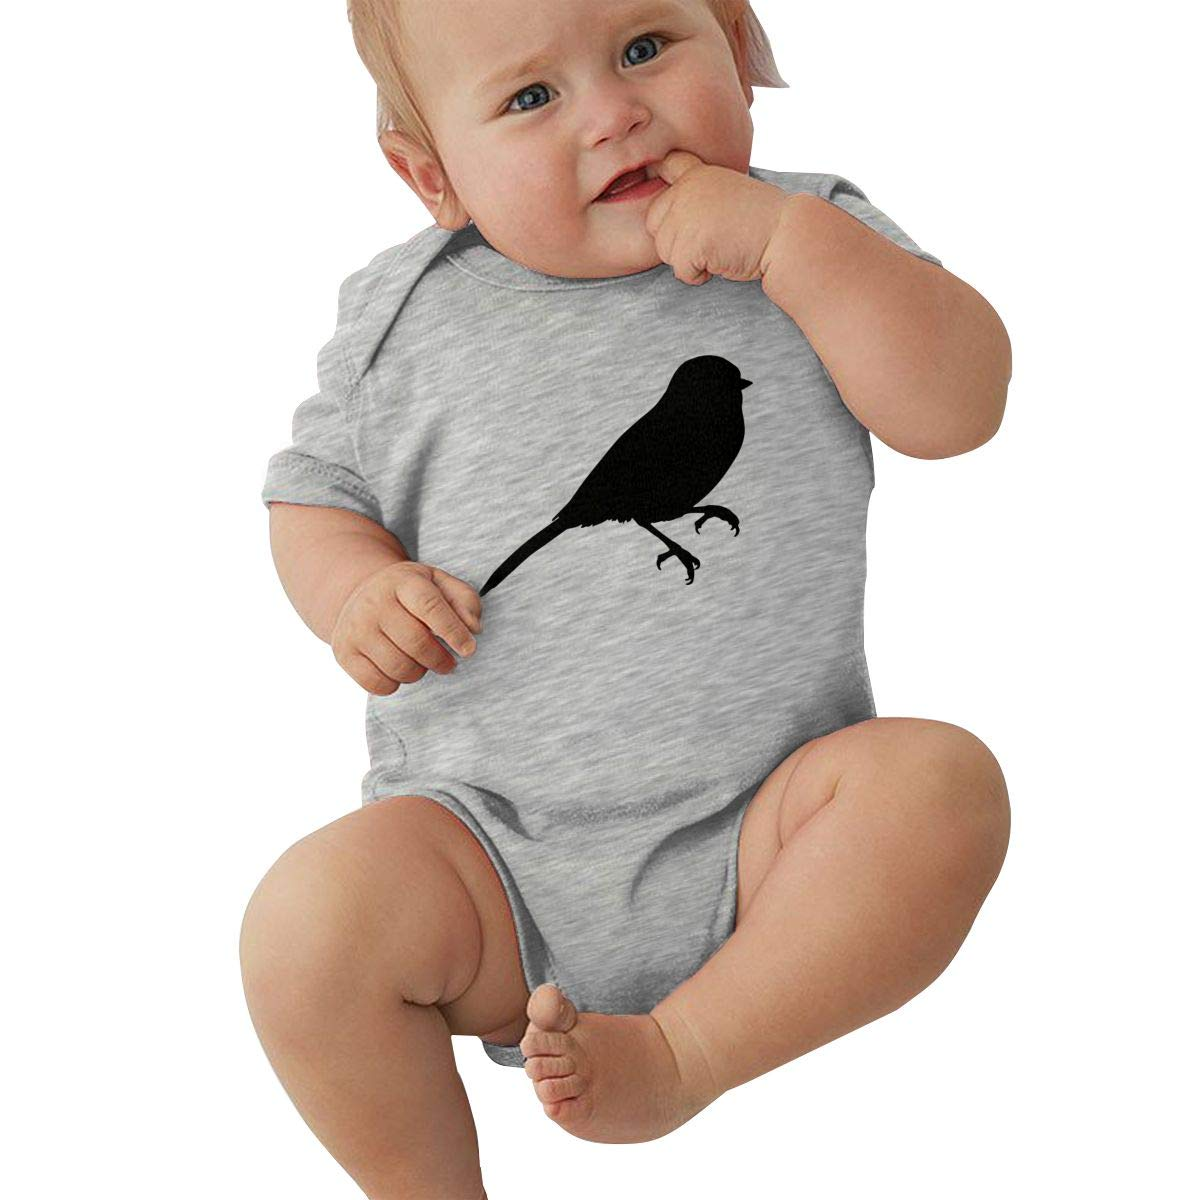 Infant Baby Girl Boy Chickadee Silhouettes OutfitsRomper Jumpsuit Short Sleeve Bodysuit Tops Clothes